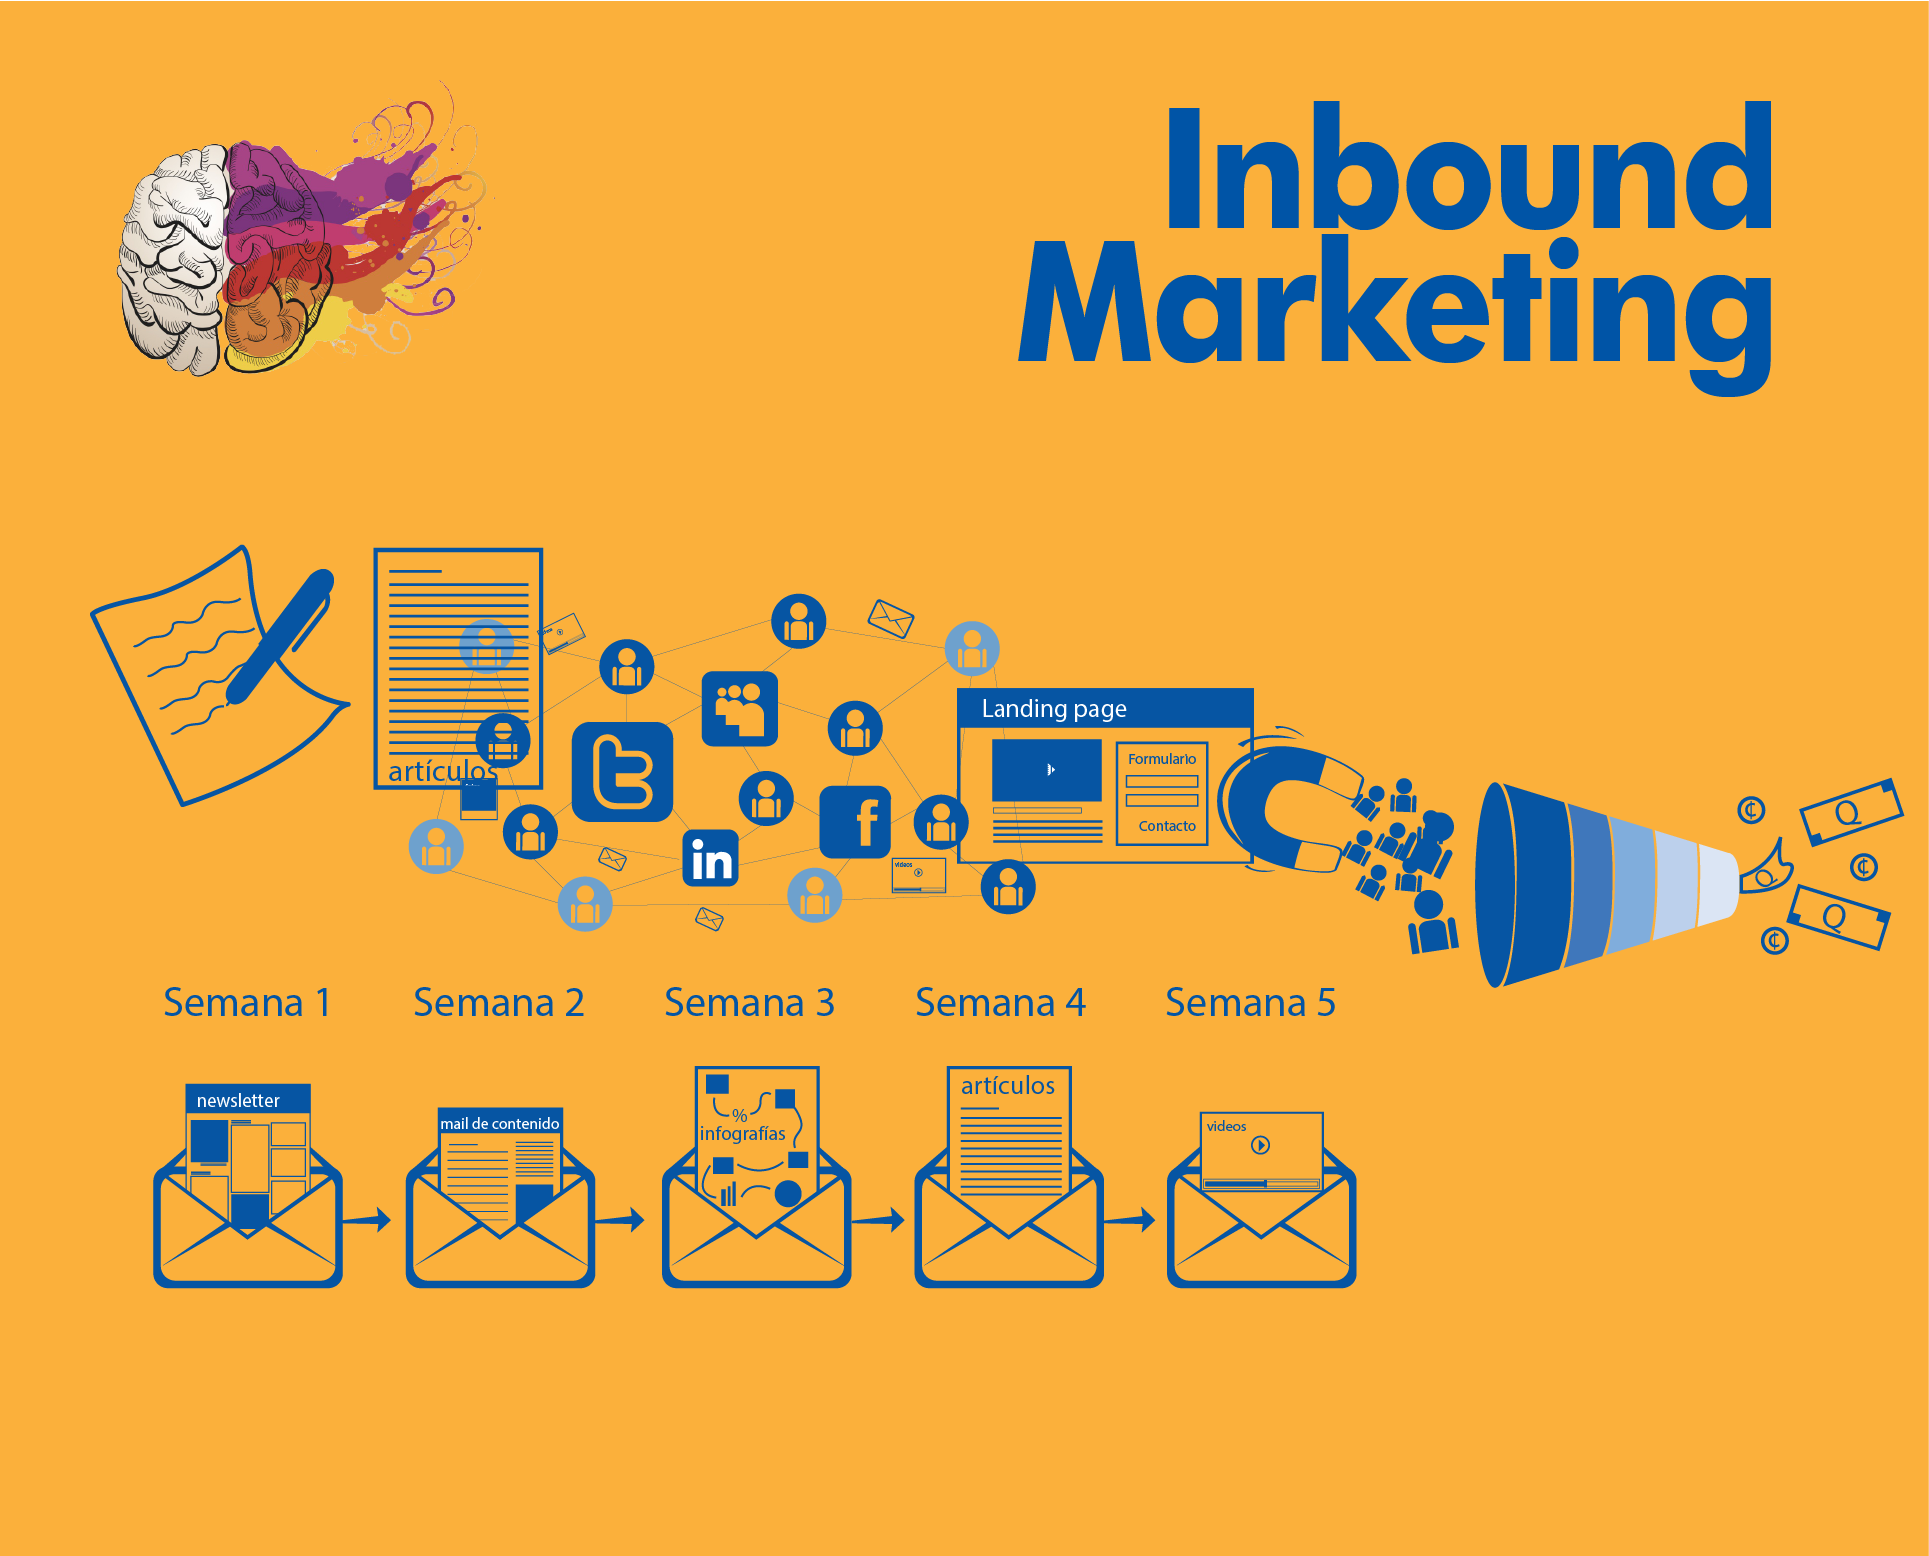 Paquete de Inbound Marketing